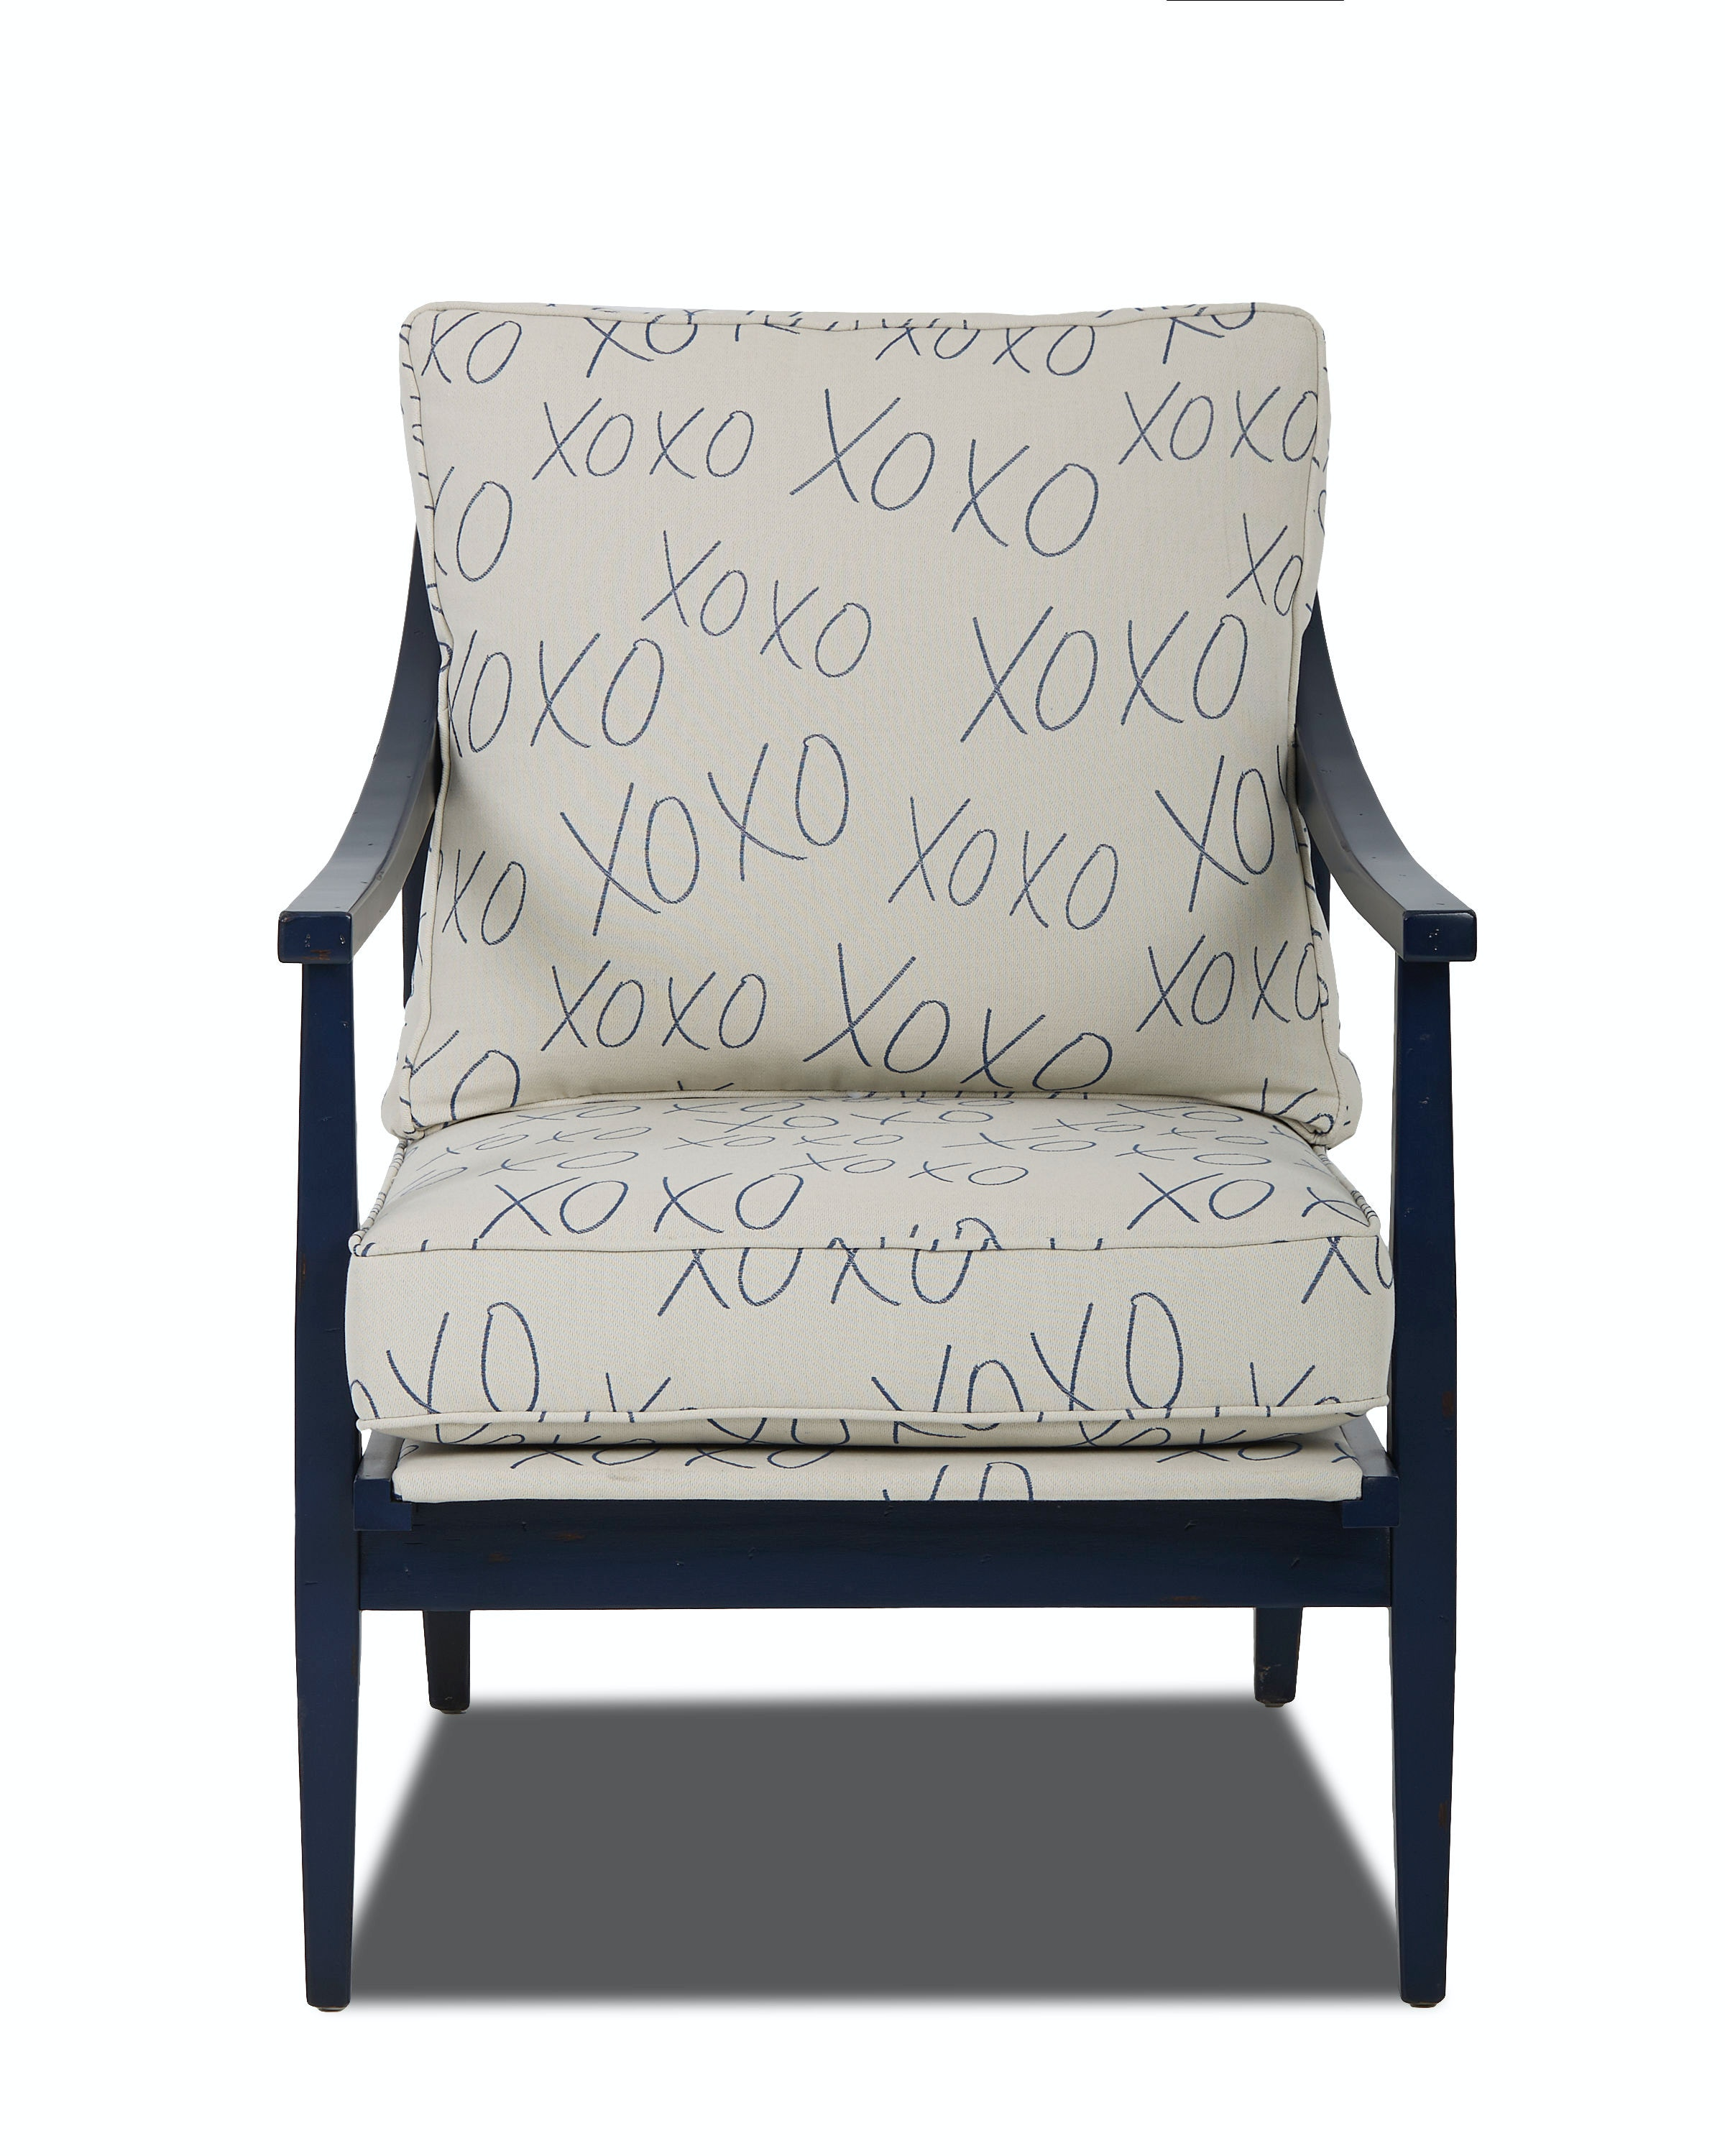 xoxo furniture. Klaussner Lynn K934 OC Xoxo Furniture